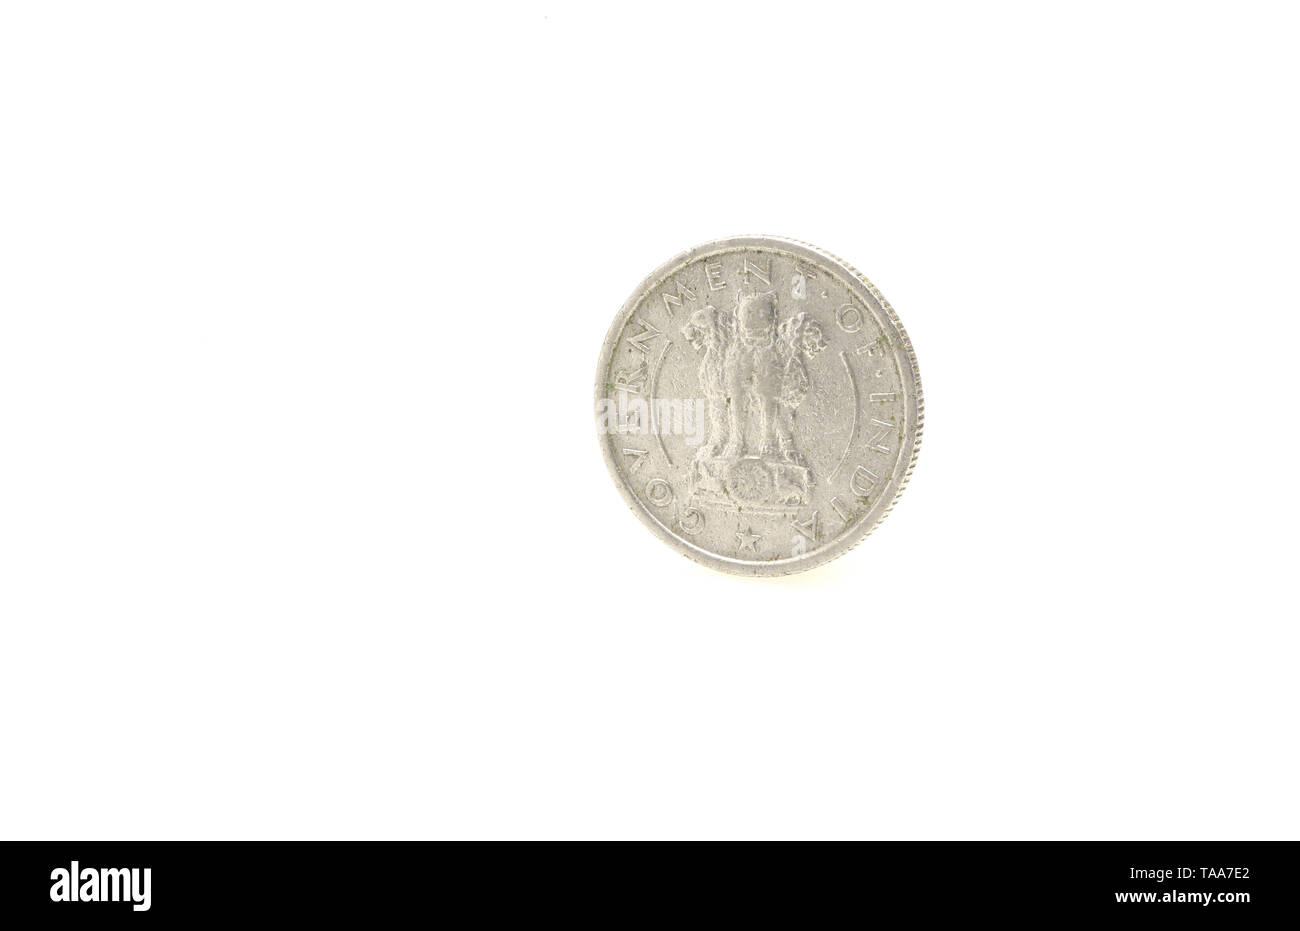 adha rupee coin on white background, India, Asia - Stock Image